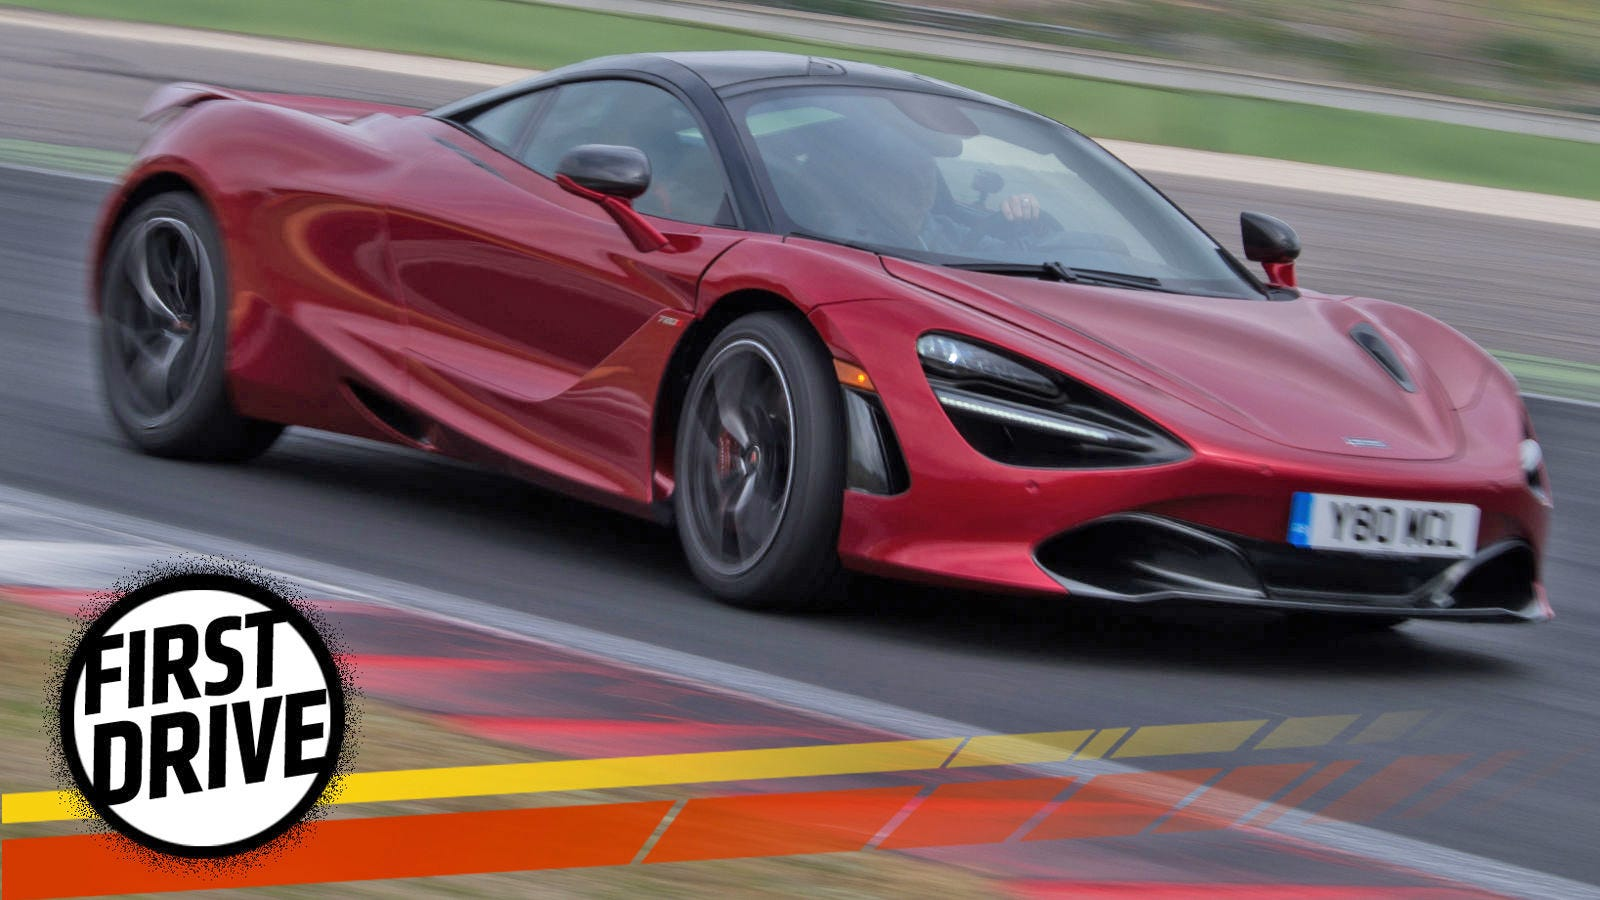 The Mclaren Is A Cosmically Fast Supercar That Teaches You To